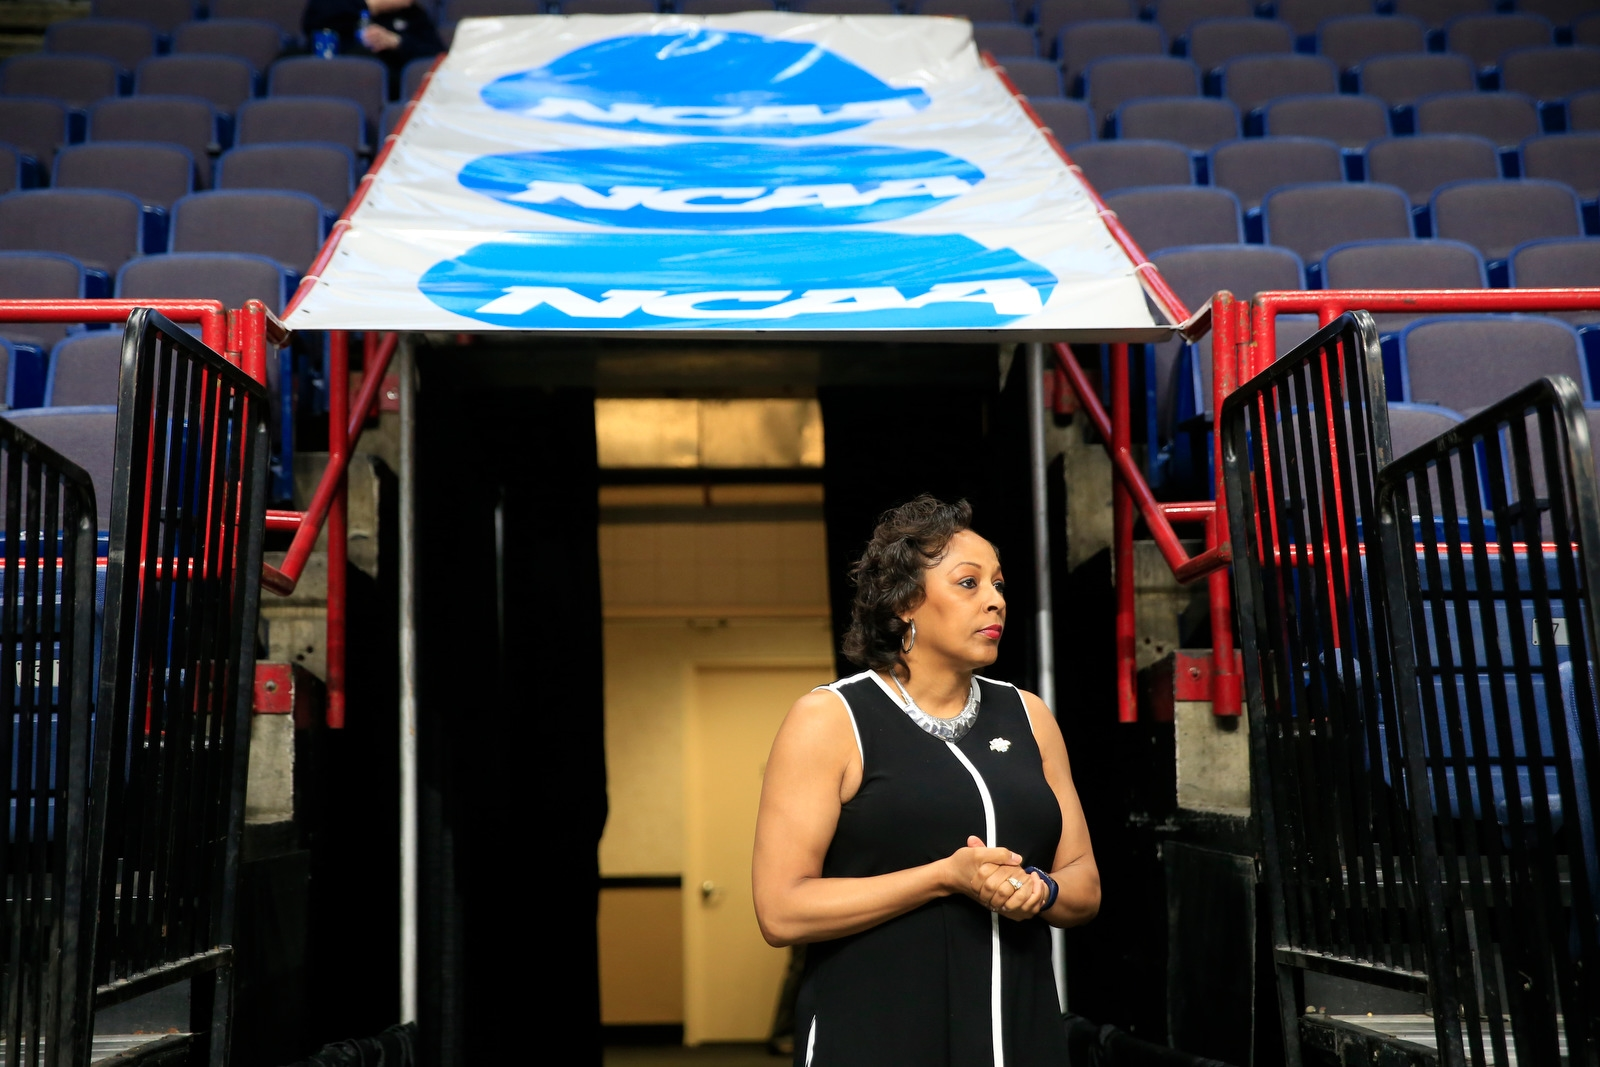 Buffalo coach Felisha Legette-Jack stands in the walkway prior to playing South Carolina in a NCAA women's college basketball tournament regional semifinal at the Times Union Center on Saturday March 24, 2018.